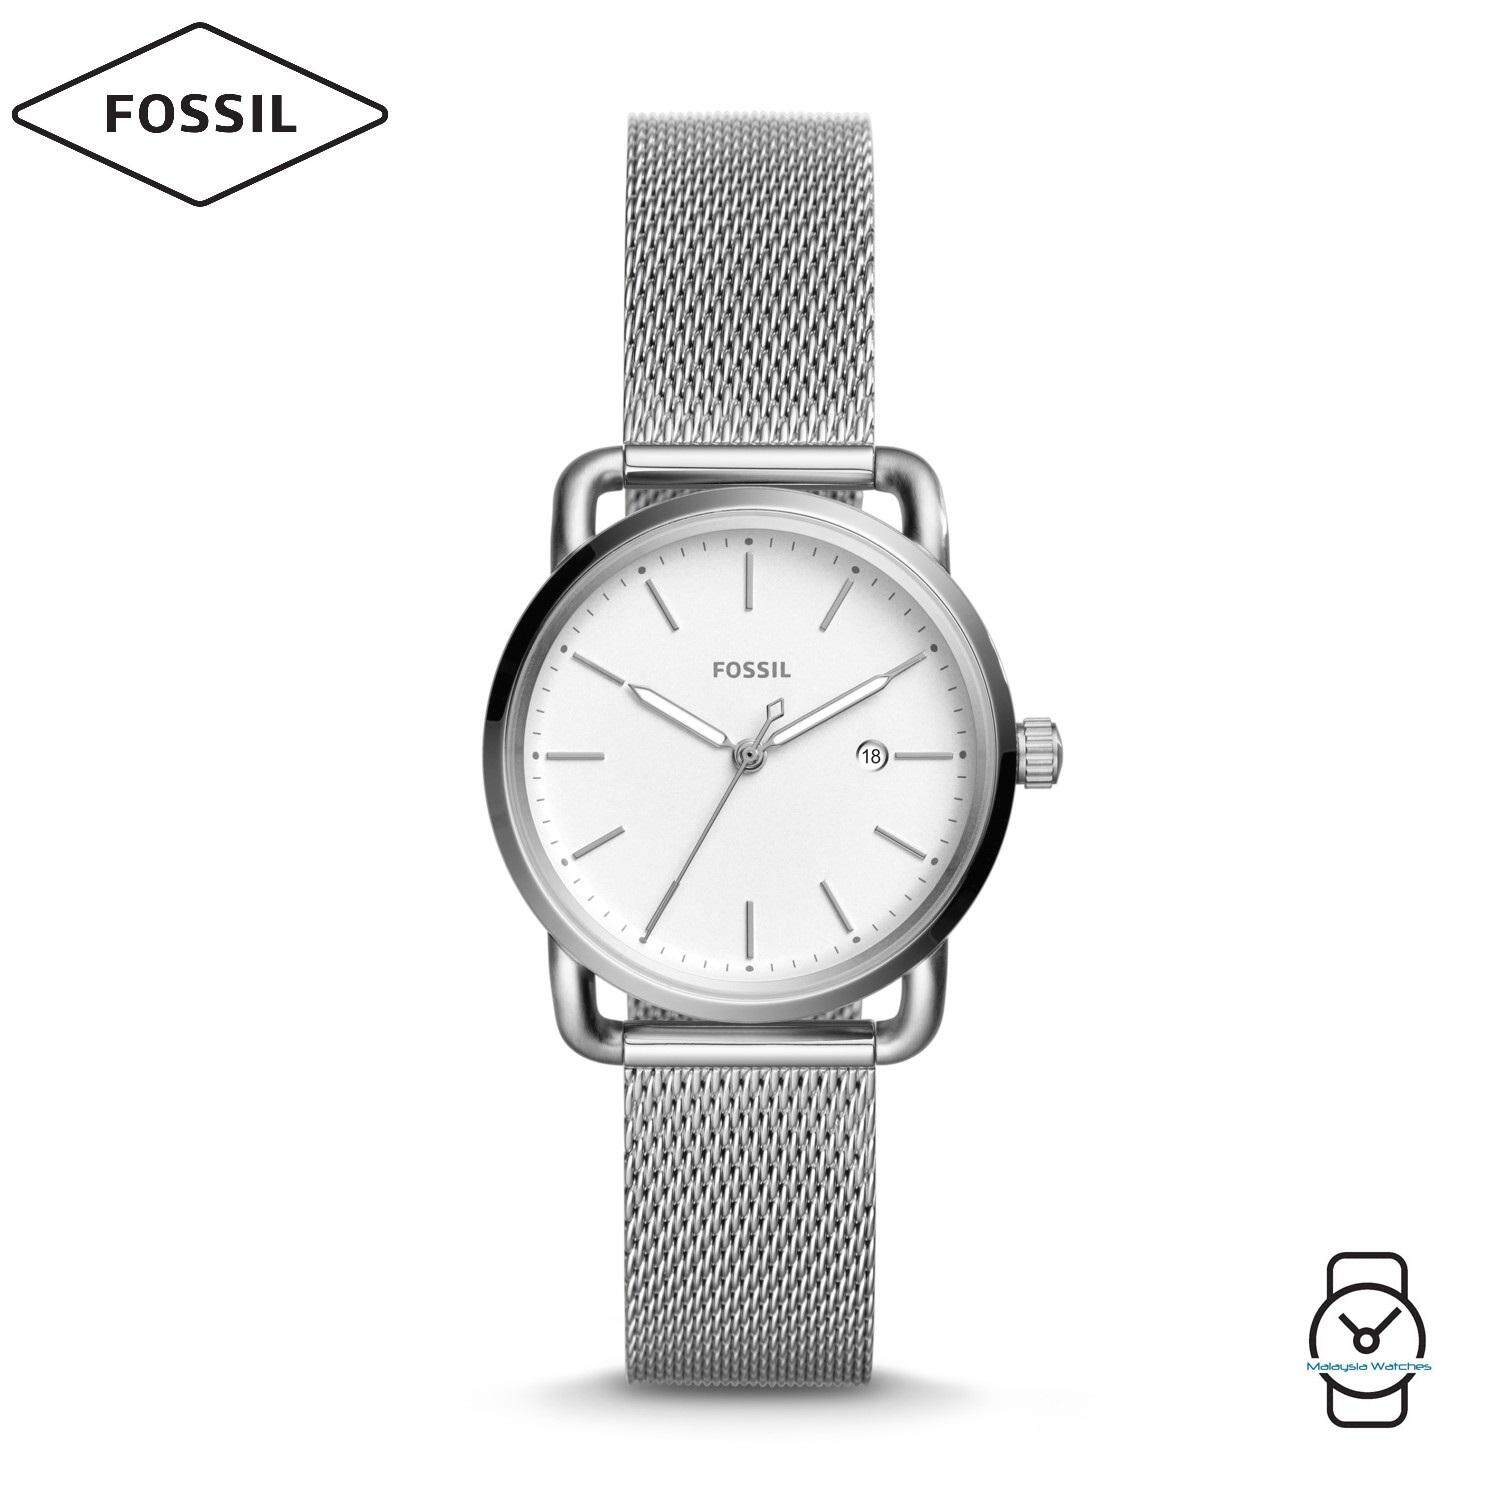 Fossil Watches Price In Malaysia Best Lazada Jam Tangan Neutra Chronograph Stainless Steel Fs5384 Women Es4331 The Commuter White Dial Watch Silver